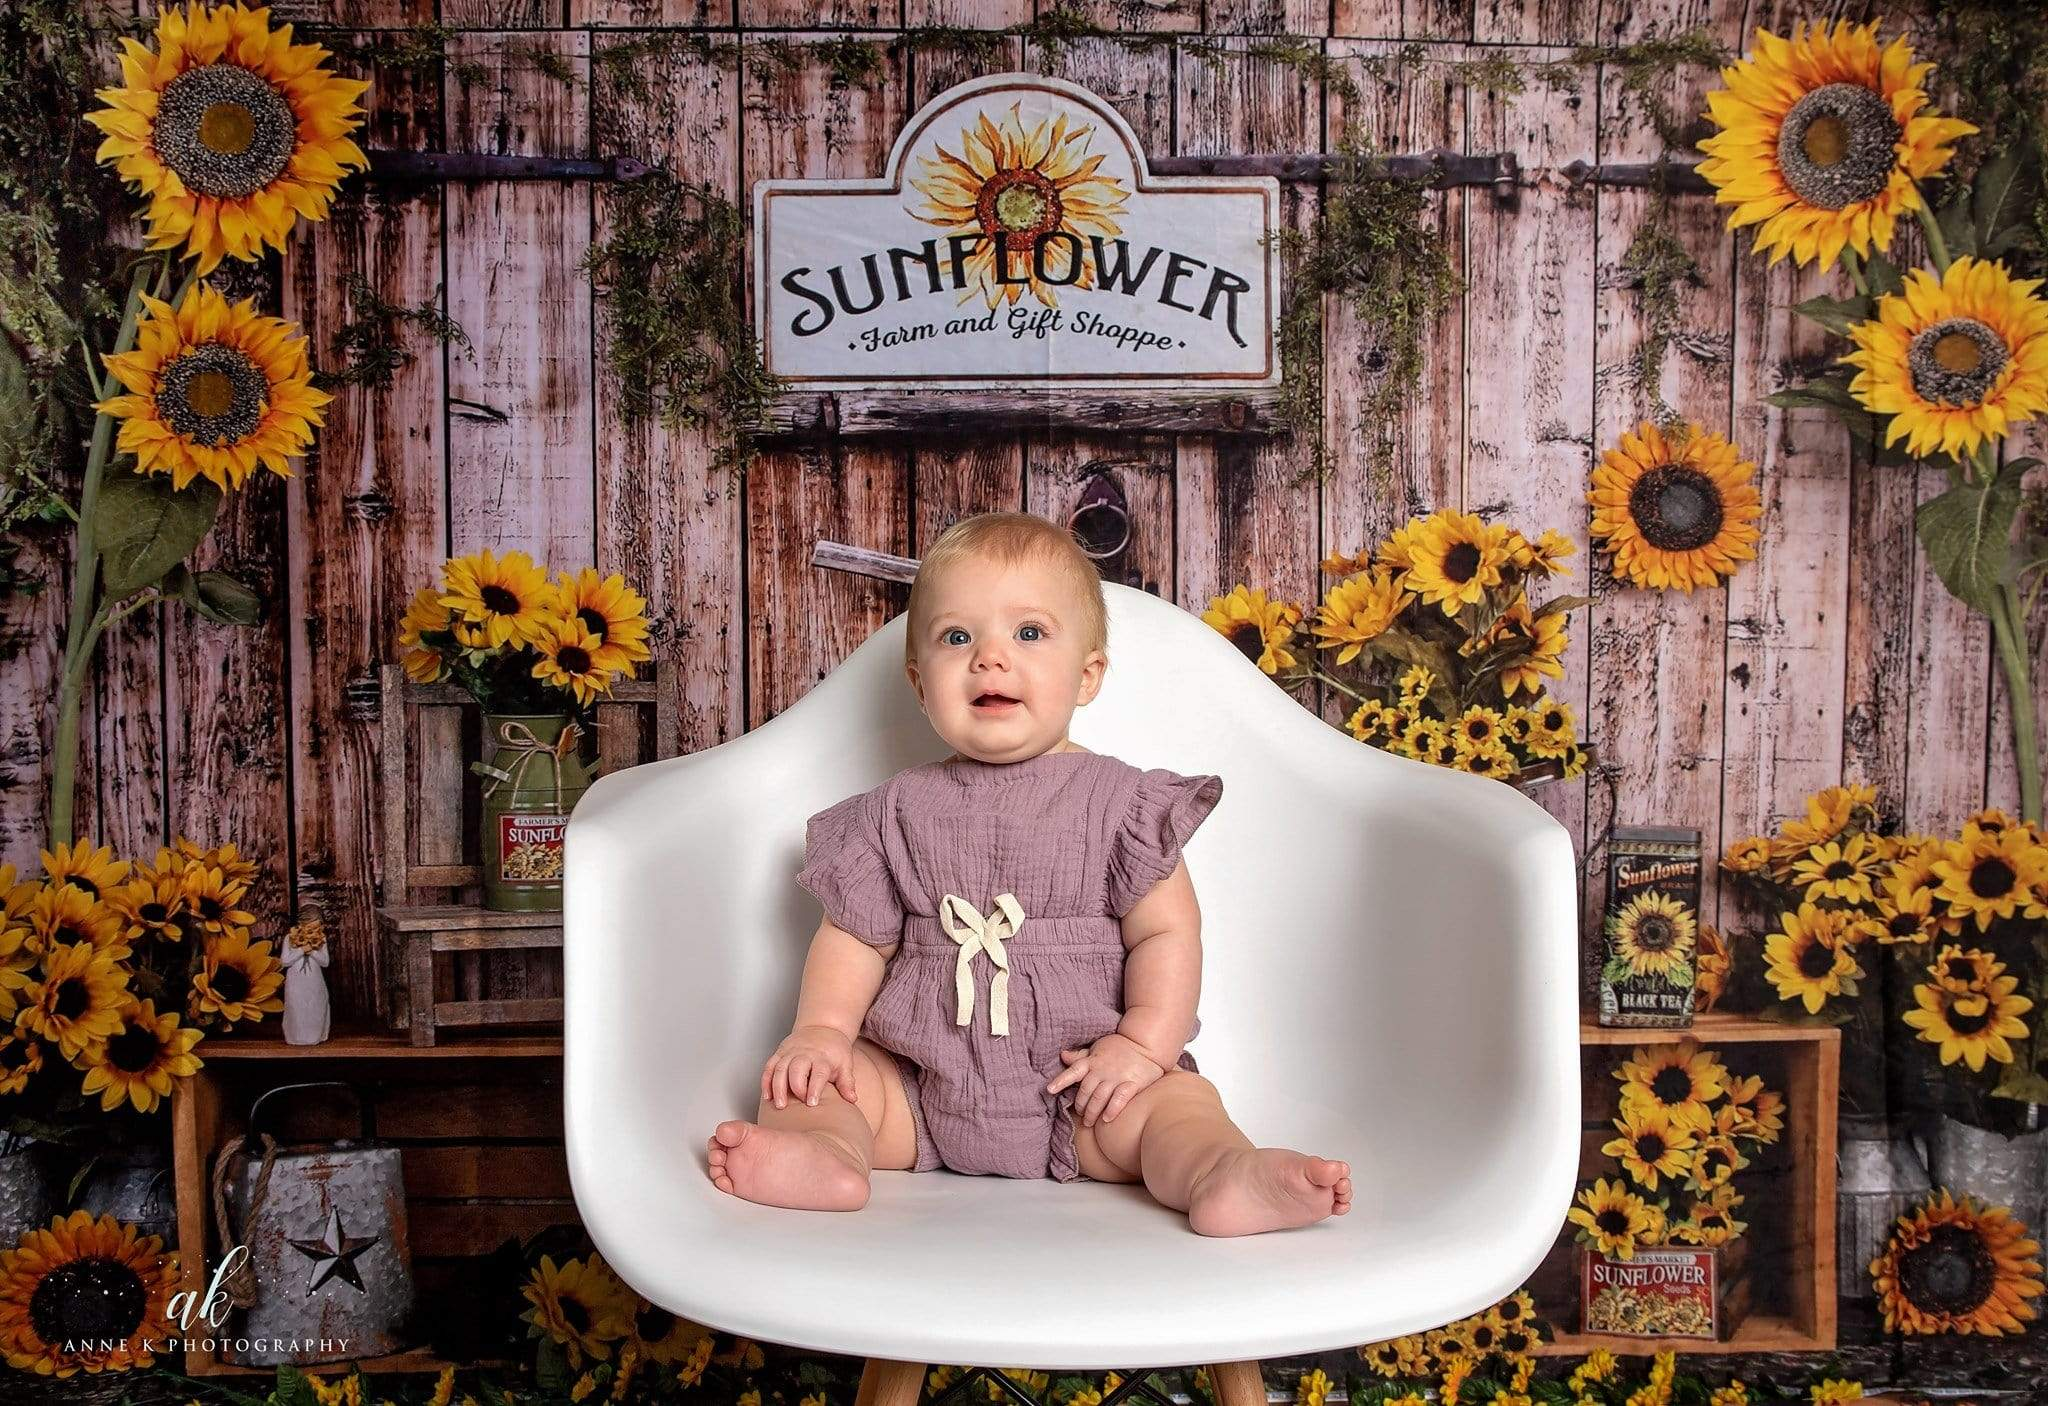 Load image into Gallery viewer, Katebackdrop£ºKate Sunflower Gift Shop Wood Fall Backdrop for Photography